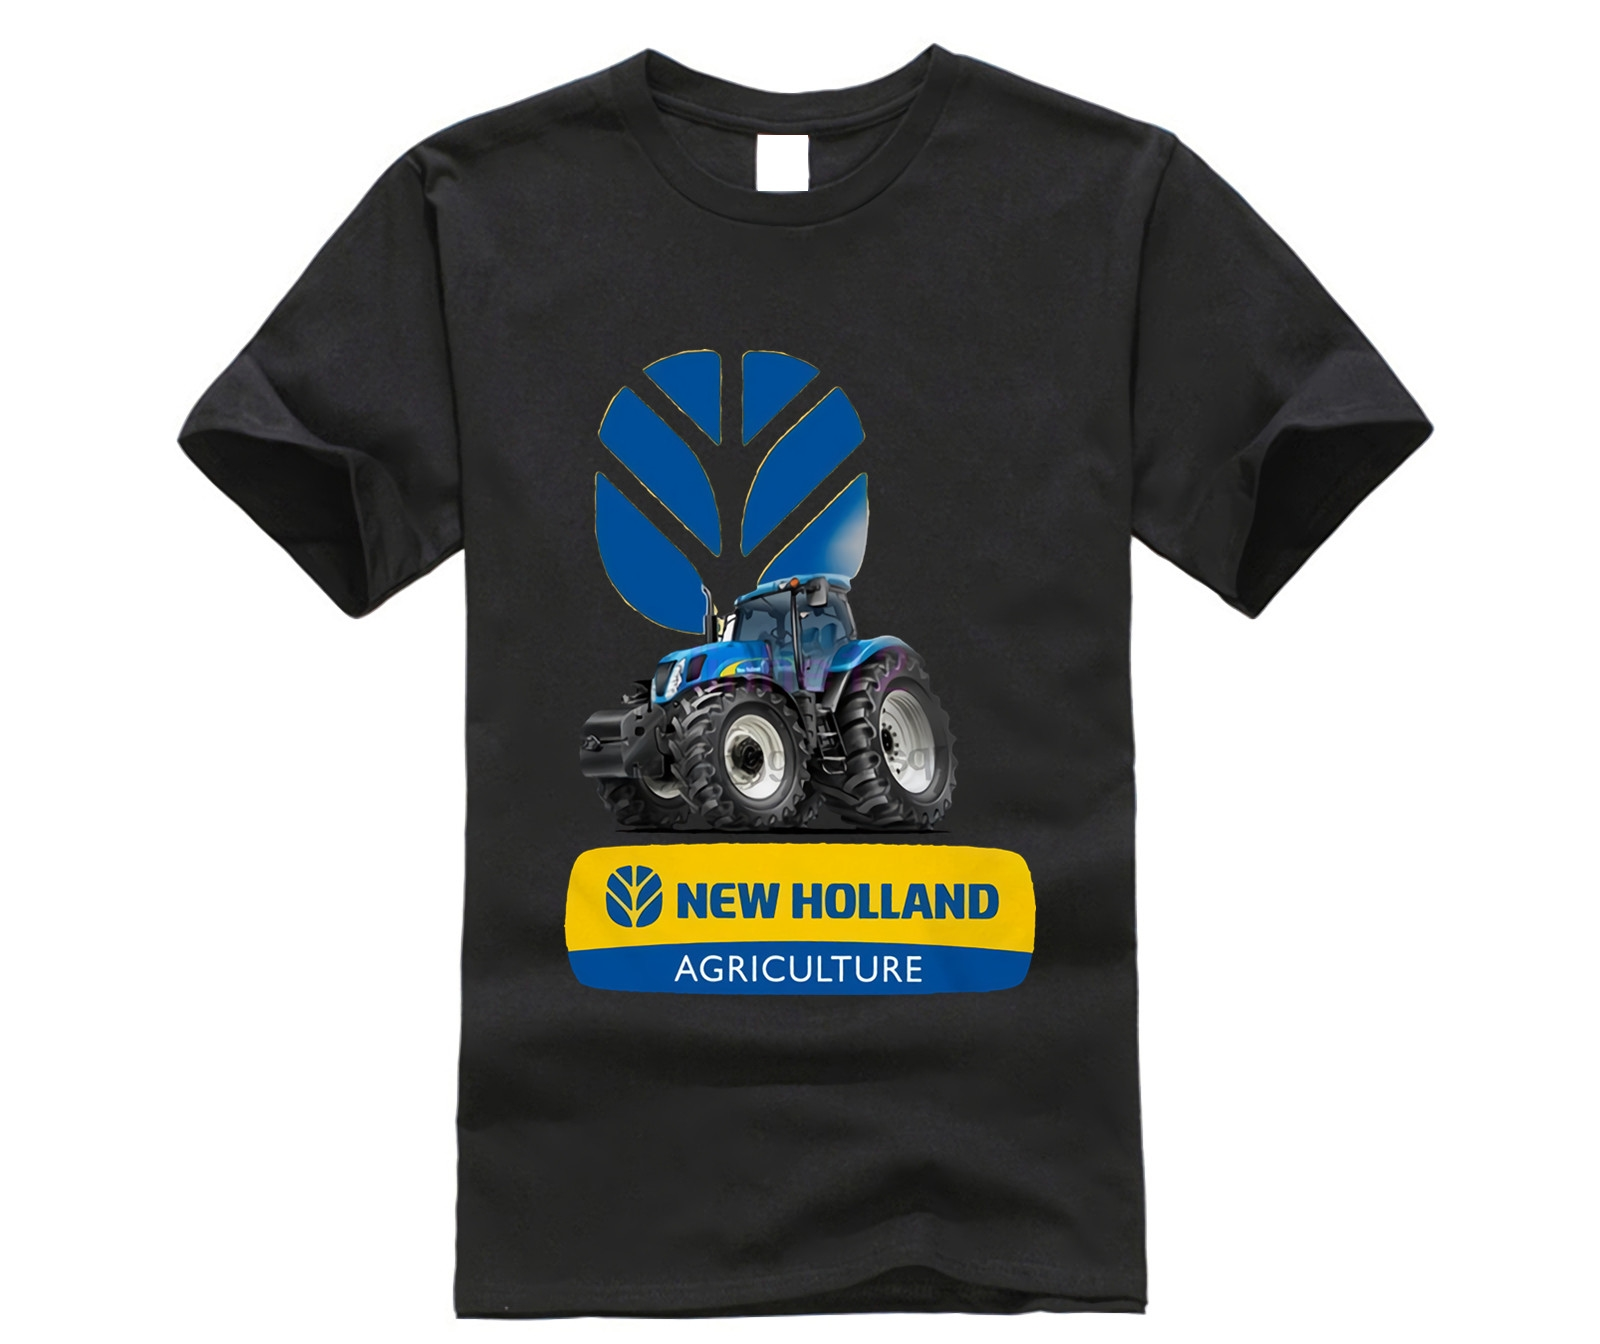 New Holland Tractor Men 39 s T Shirt 1 in T Shirts from Men 39 s Clothing